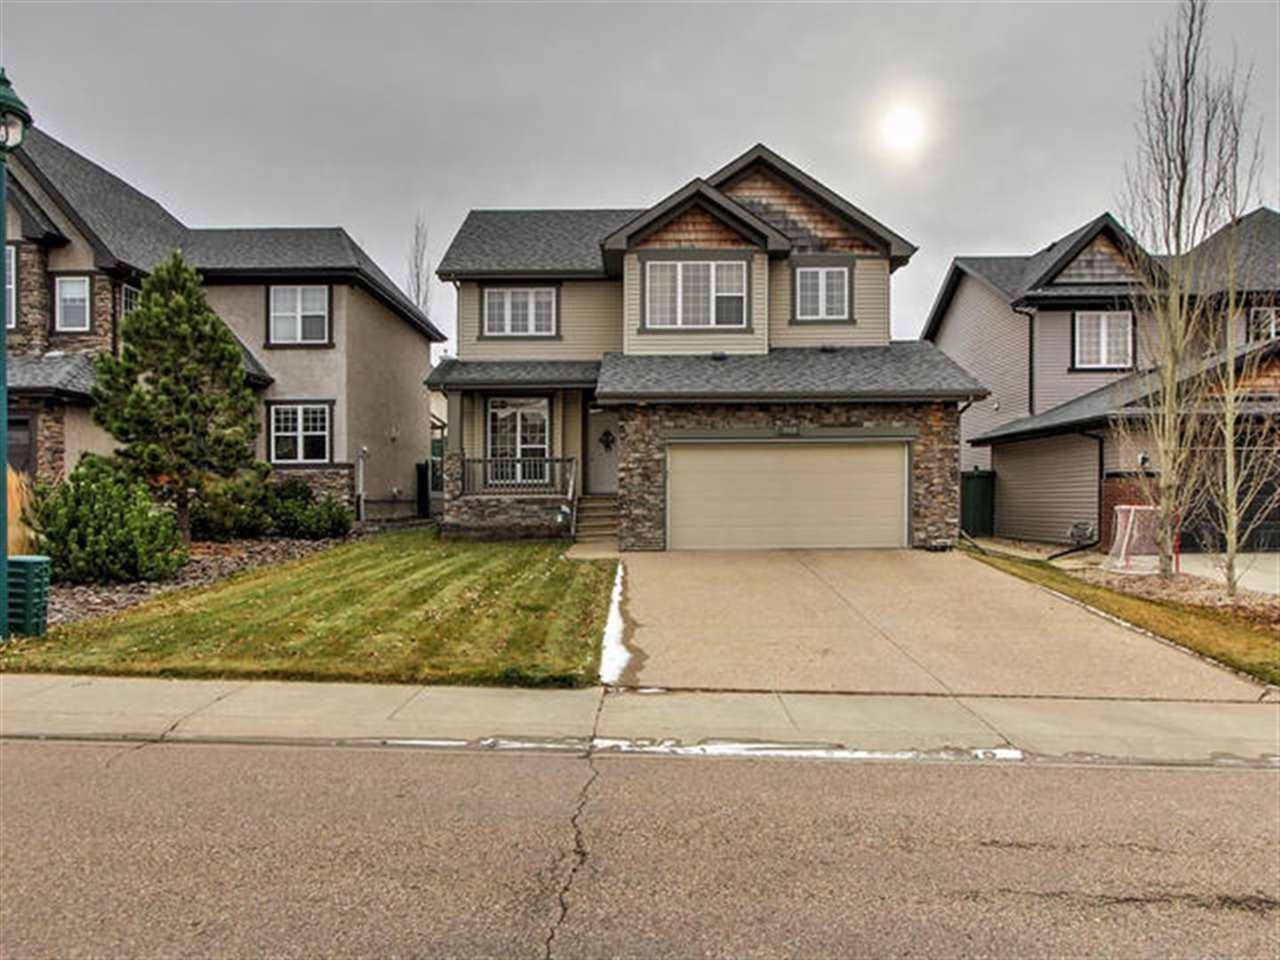 House for sale at 1668 Hector Rd Nw Edmonton Alberta - MLS: E4178982